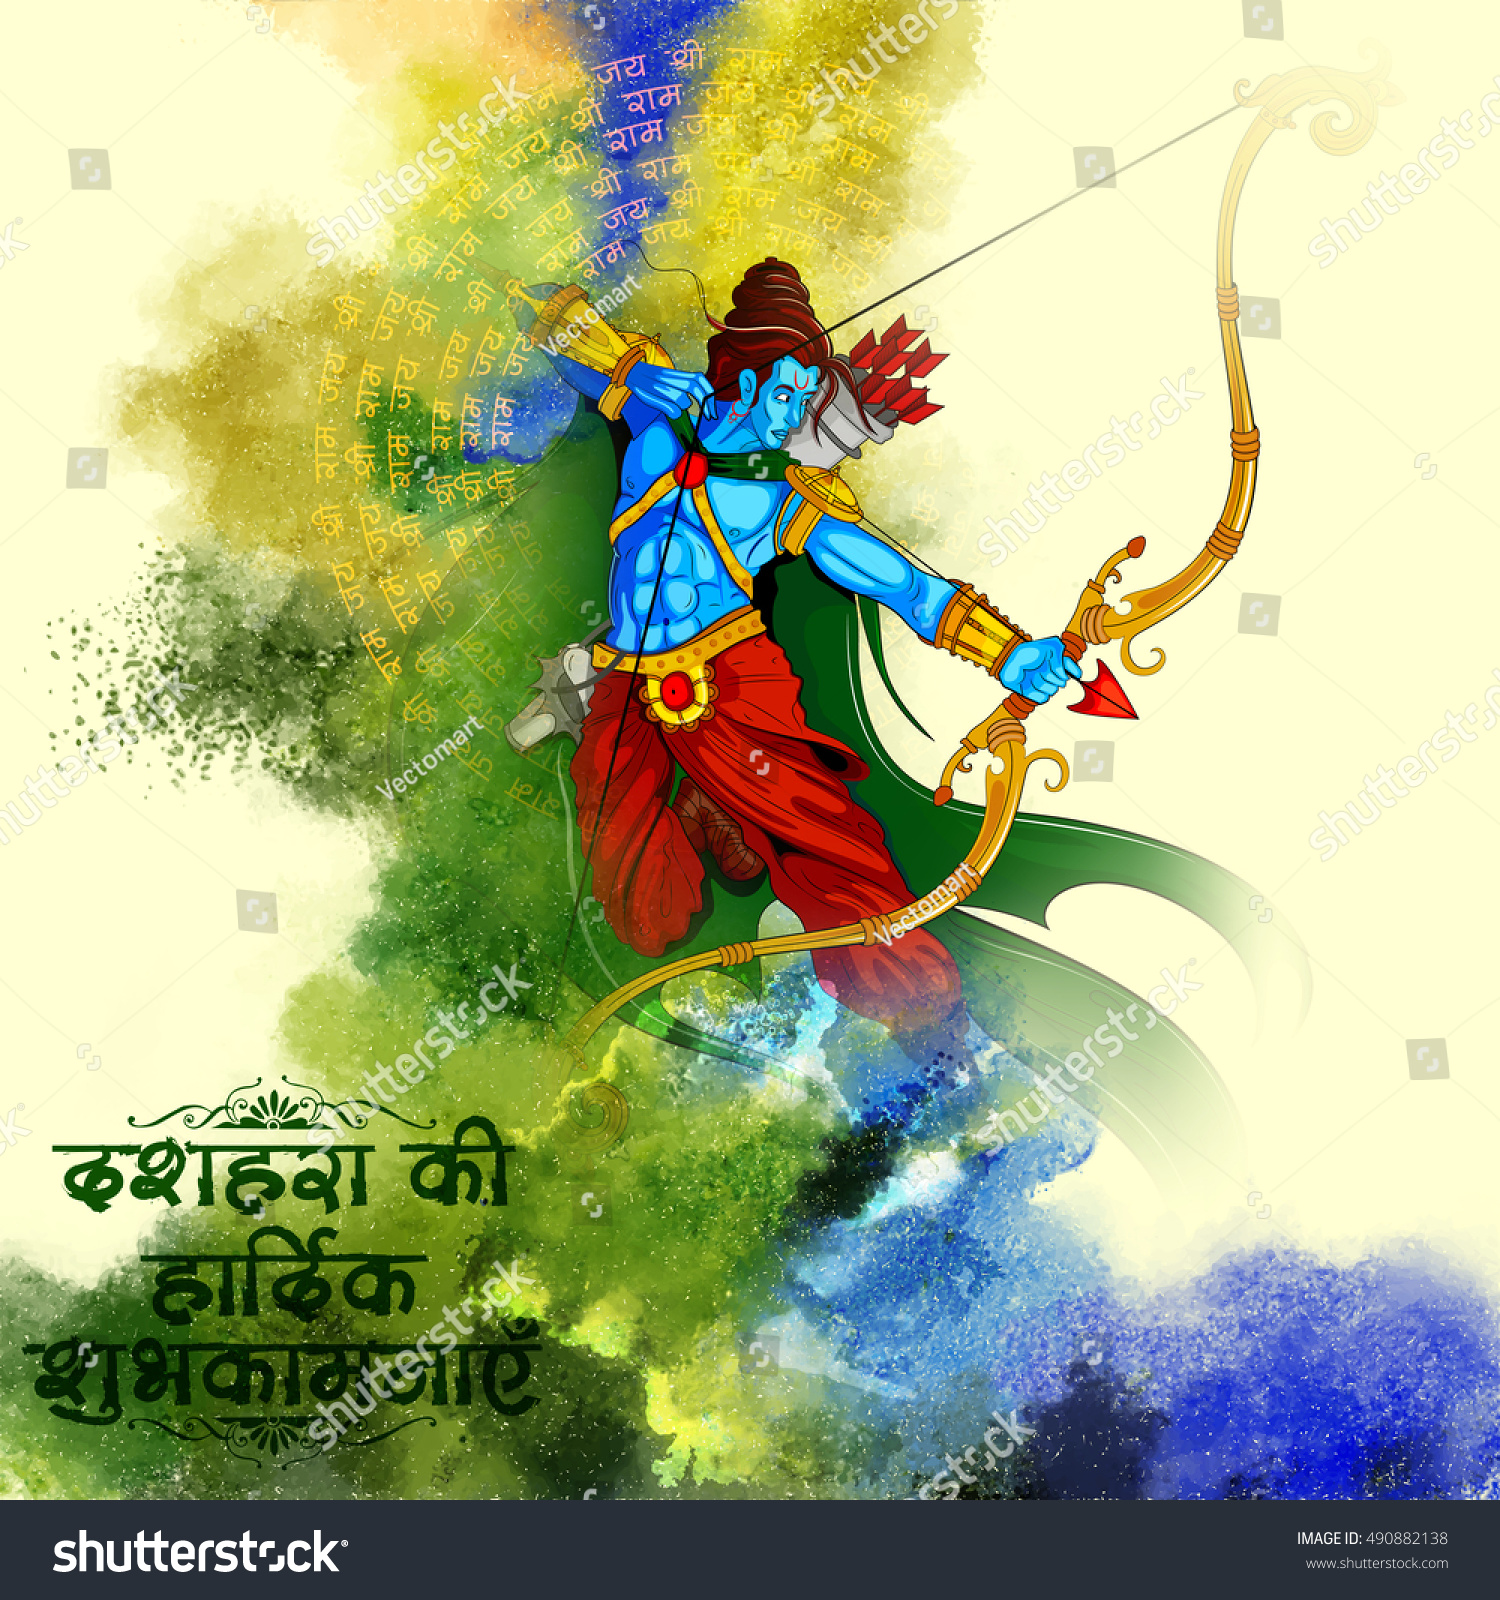 importance of festivals of india in hindi There are two important stories behind celebration of dussehra festival in indian importance and celebration of dussehra read on to know more about the significance and celebration of dussehra festival india is known as a land of festivals and celebrations.